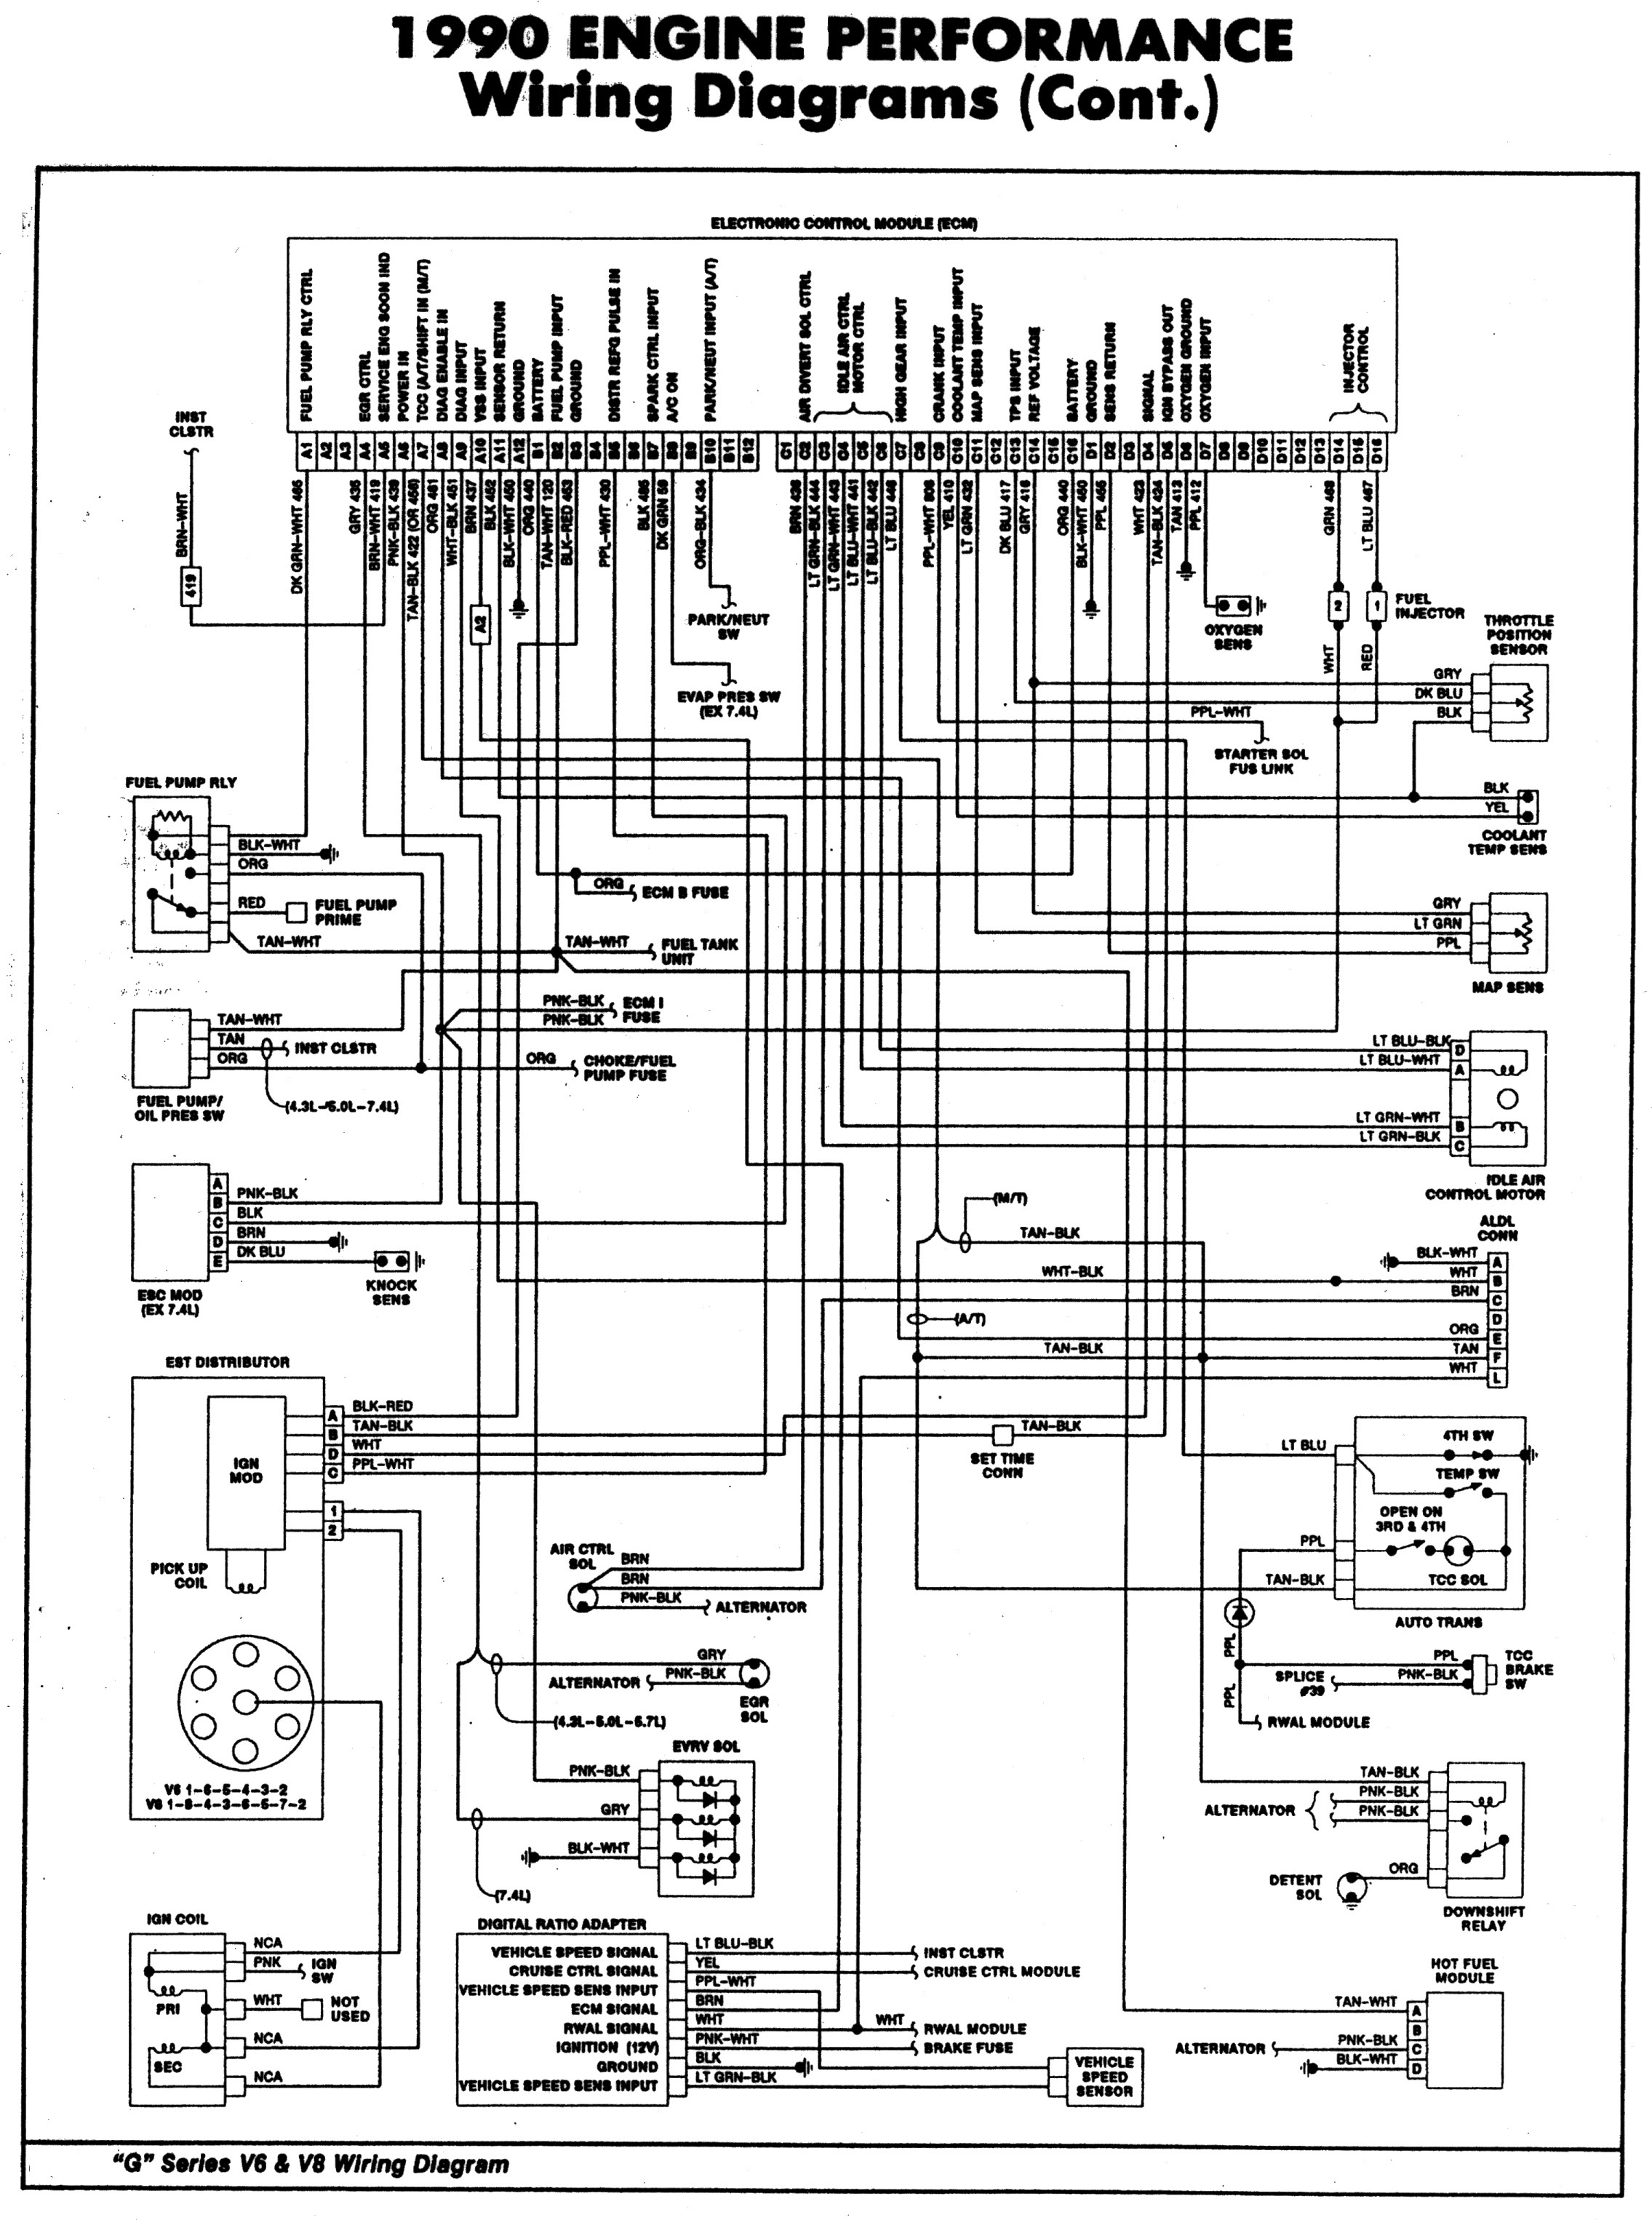 1989 Gmc Wiring Harness - Deweze Wiring Diagram -  1994-chevys.tukune.jeanjaures37.frWiring Diagram Resource